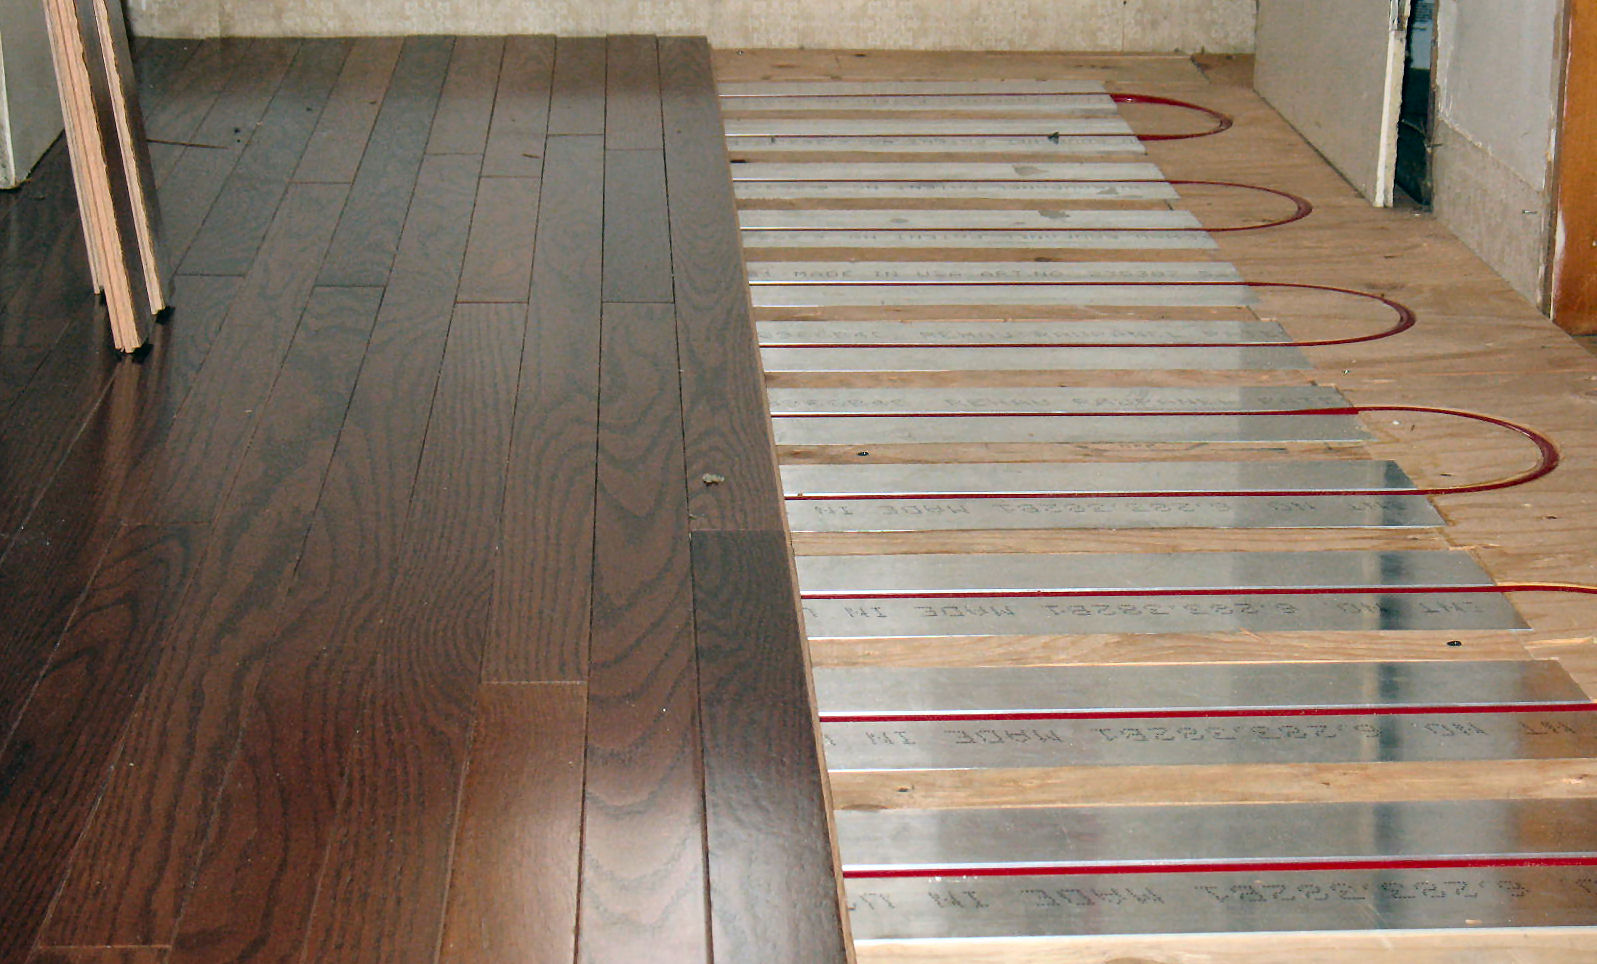 Energy Efficient Heating Radiant Floor Installation From Tacoma To - Best floor heating system review